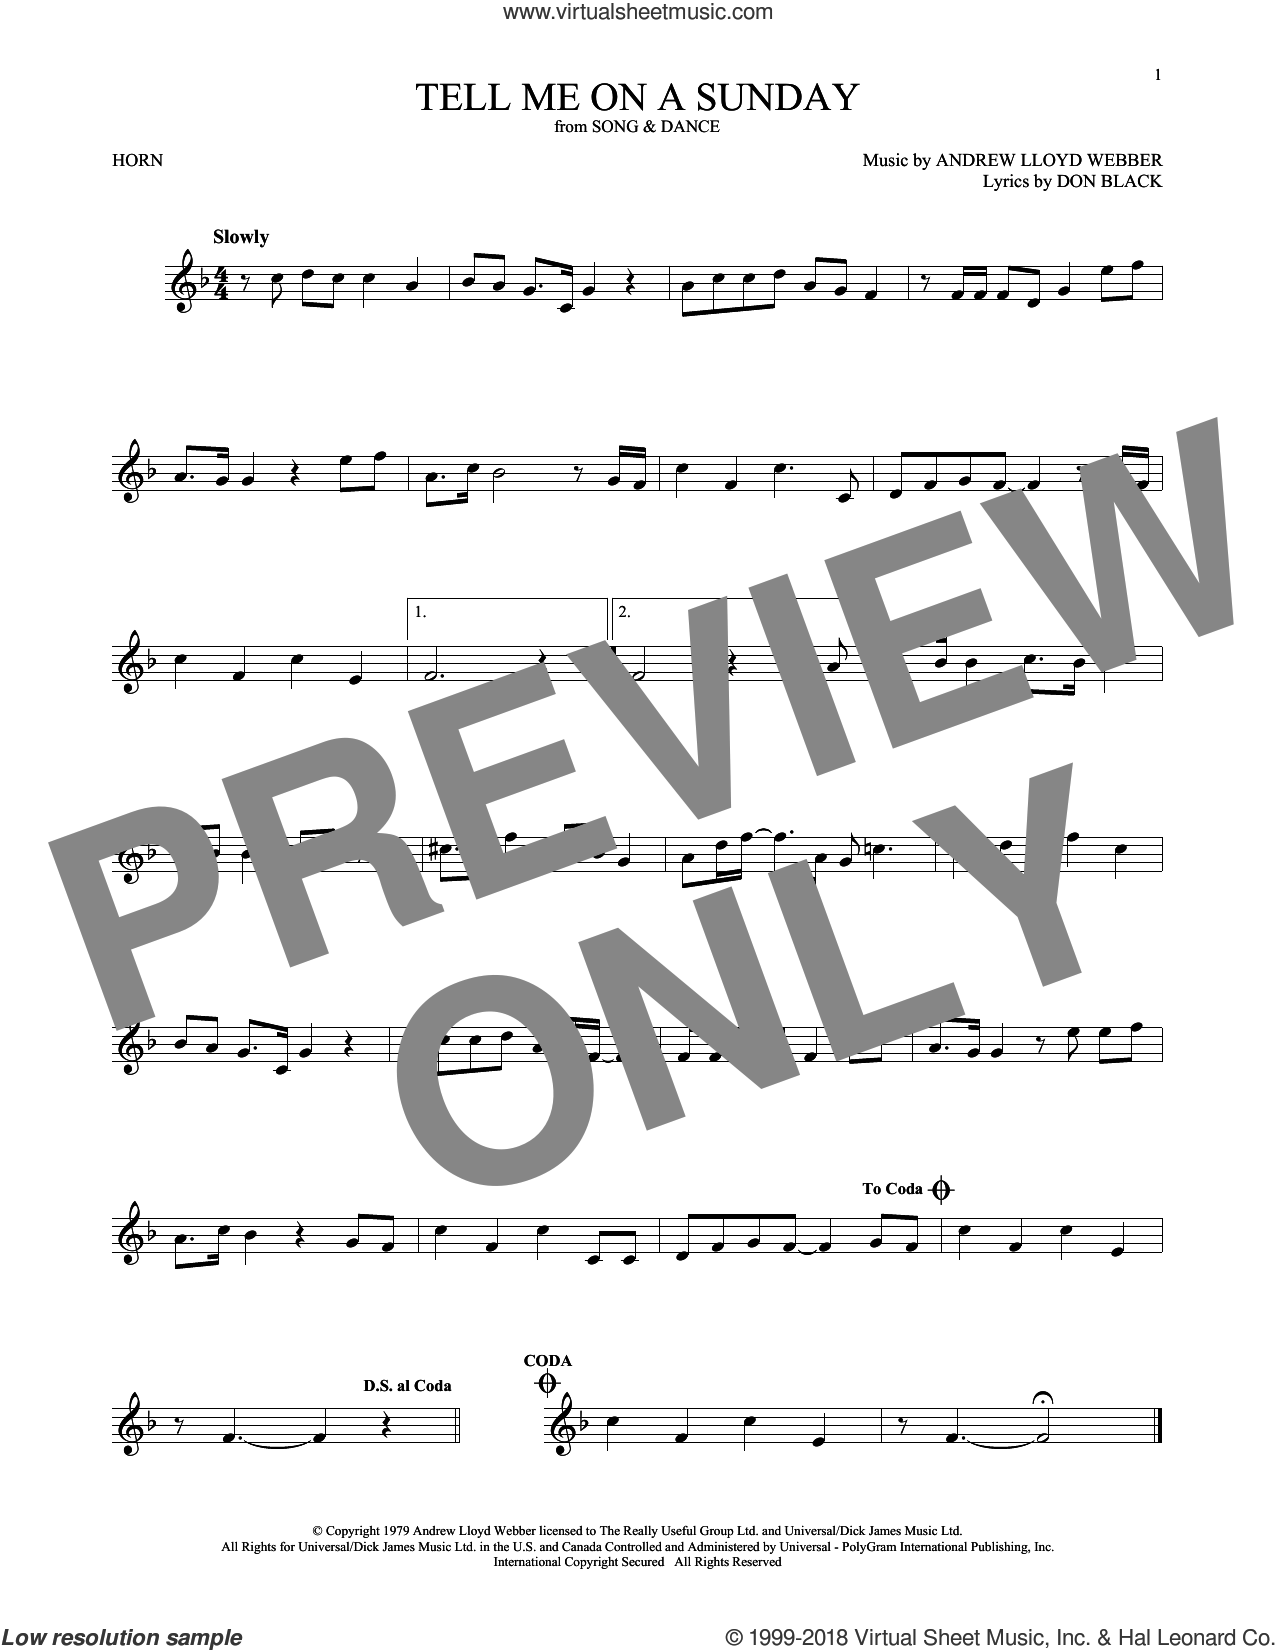 Tell Me On A Sunday sheet music for horn solo by Andrew Lloyd Webber and Don Black, intermediate skill level